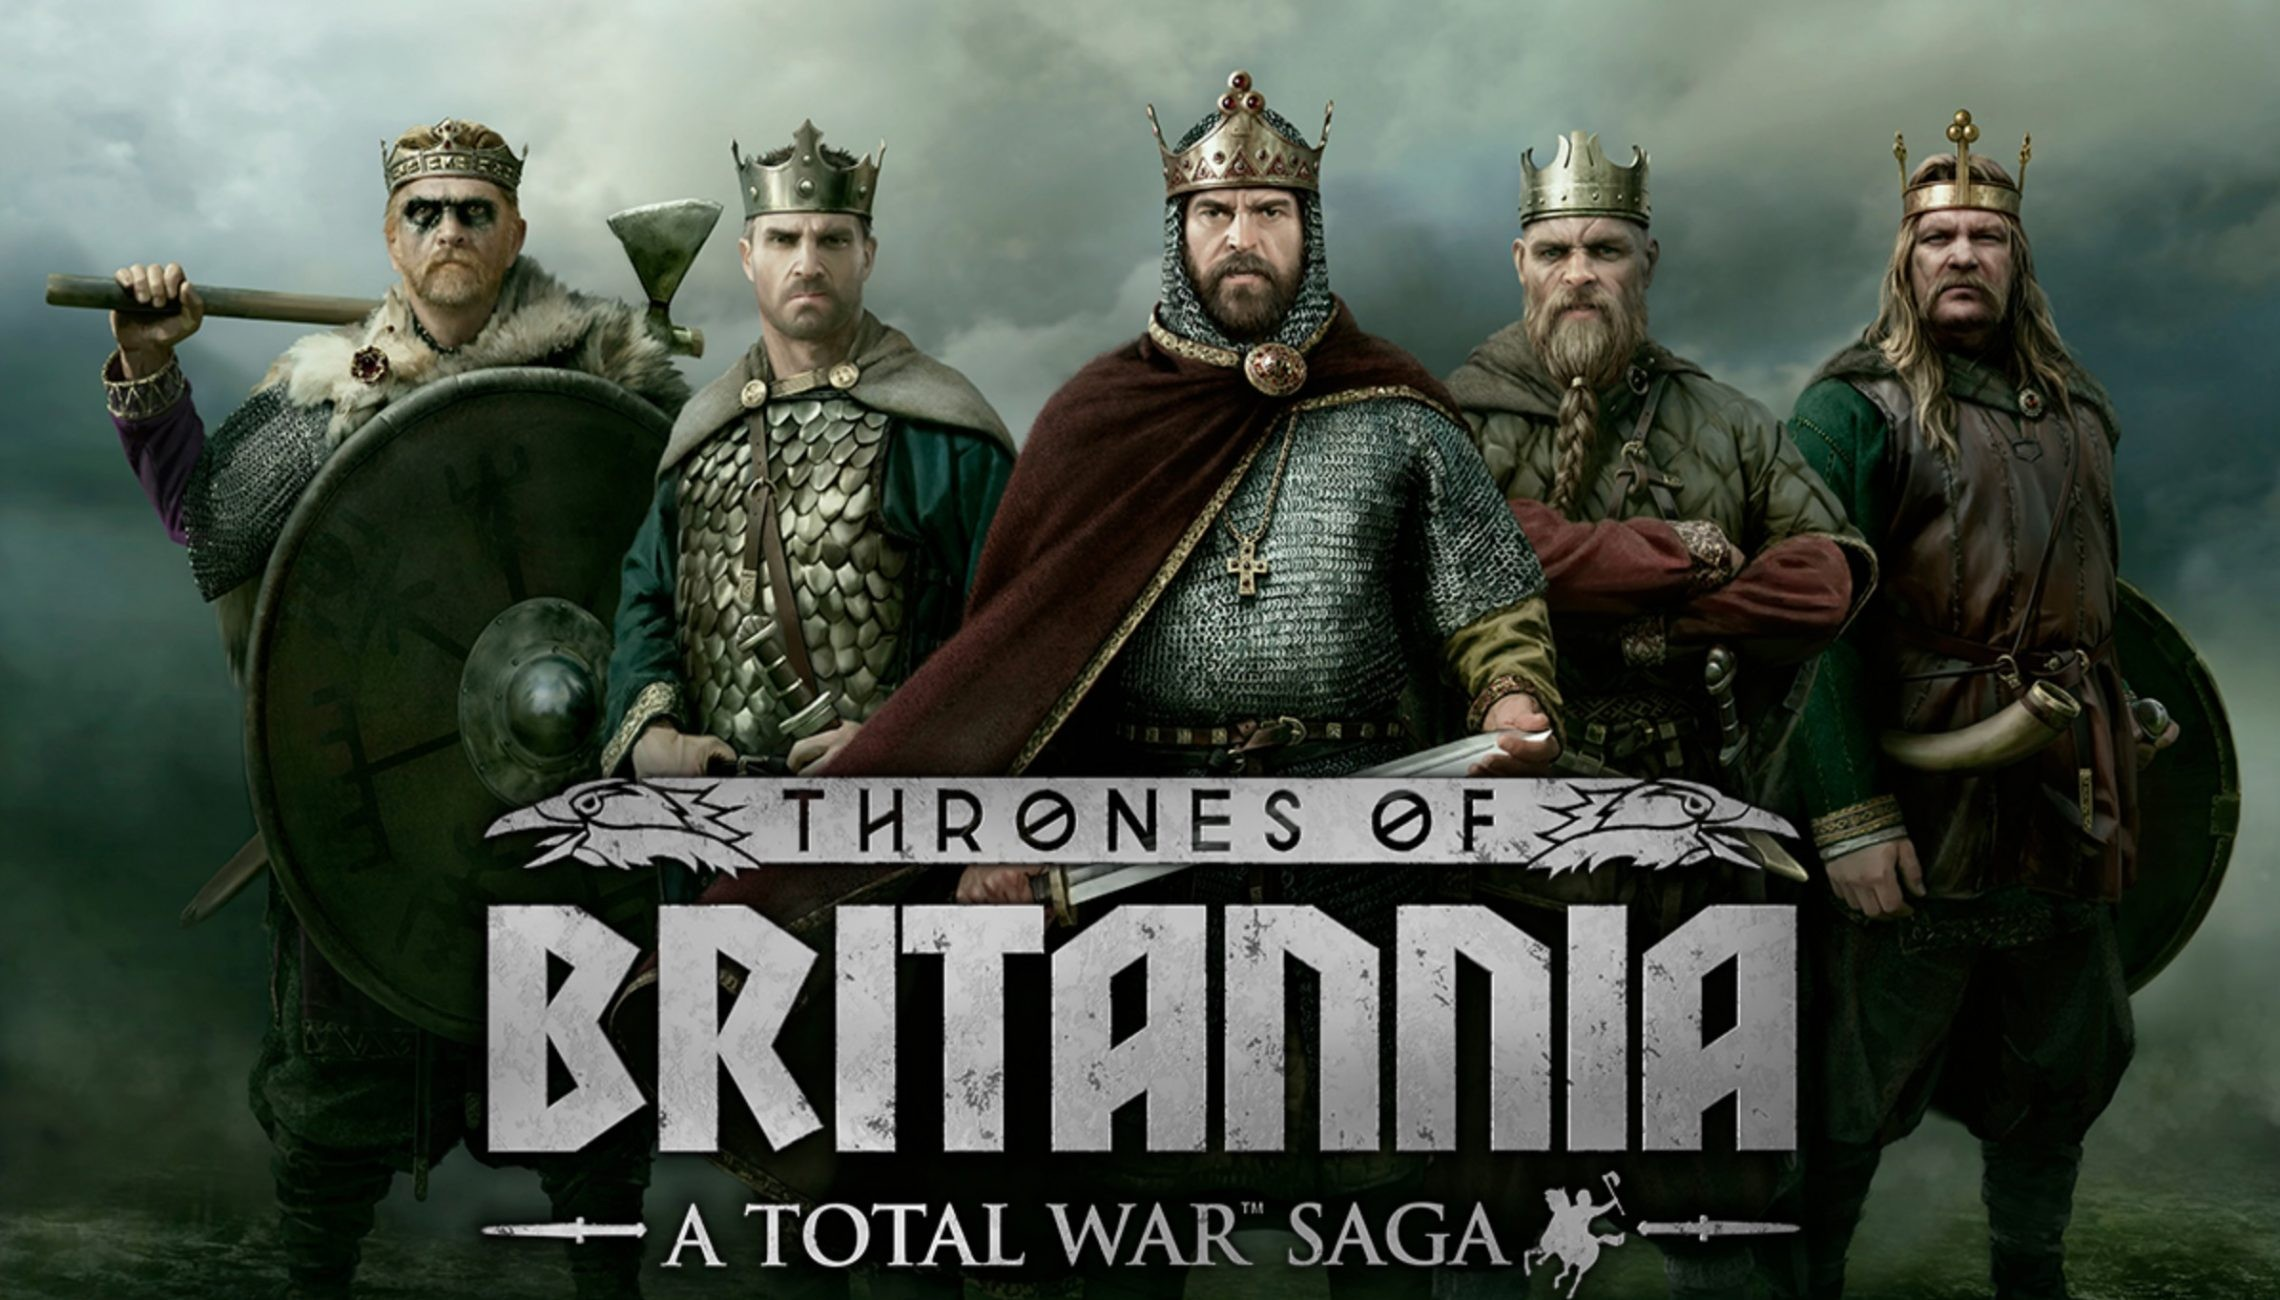 Total War Saga: Thrones of Britannia 全面战争传奇:不列颠王座